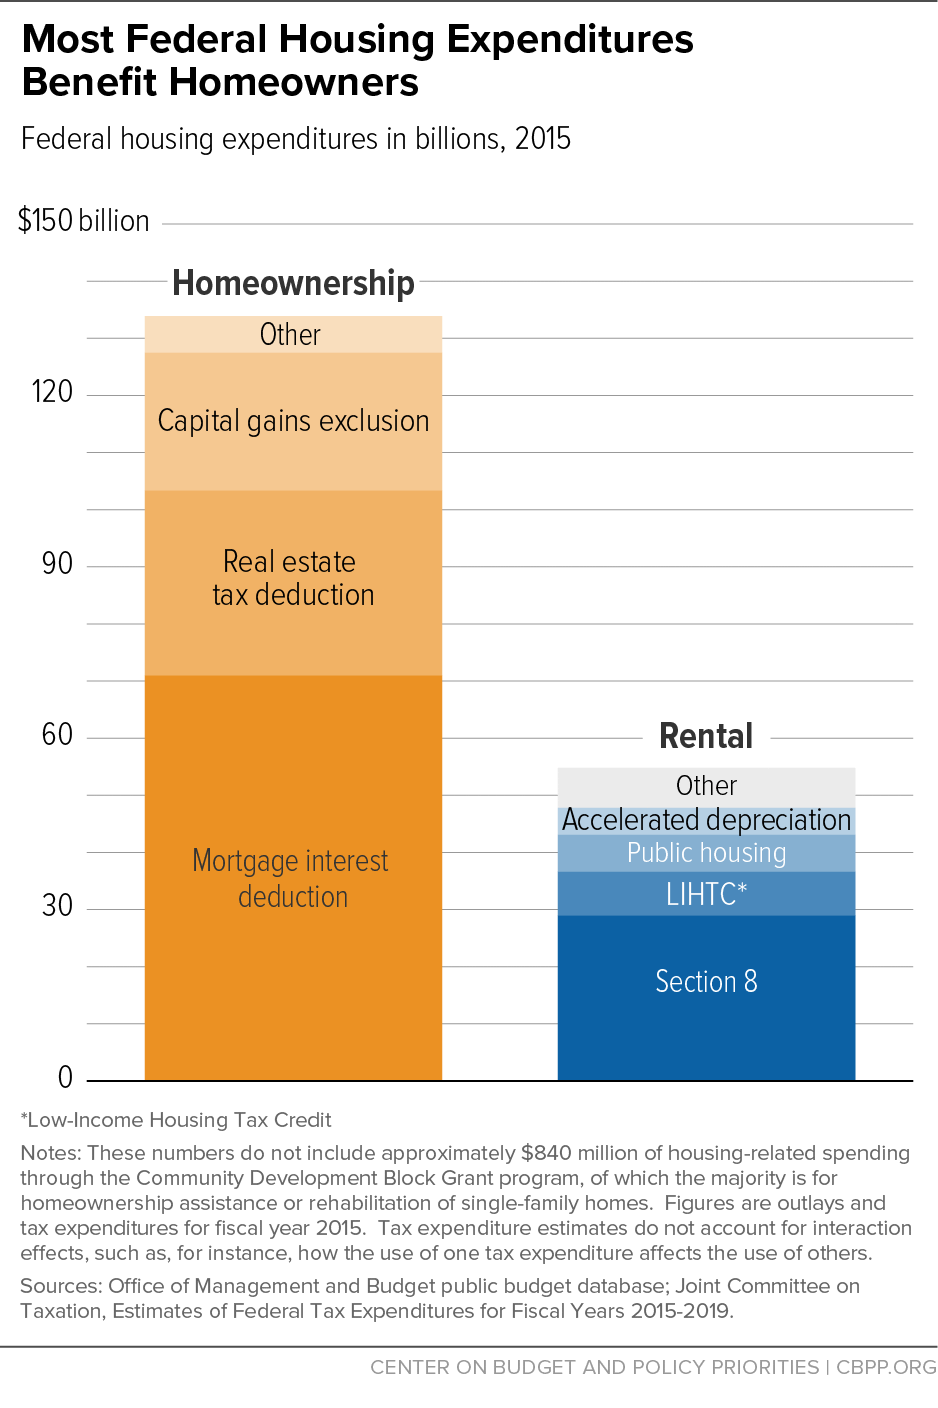 Most Federal Housing Expenditures Benefit Homeowners